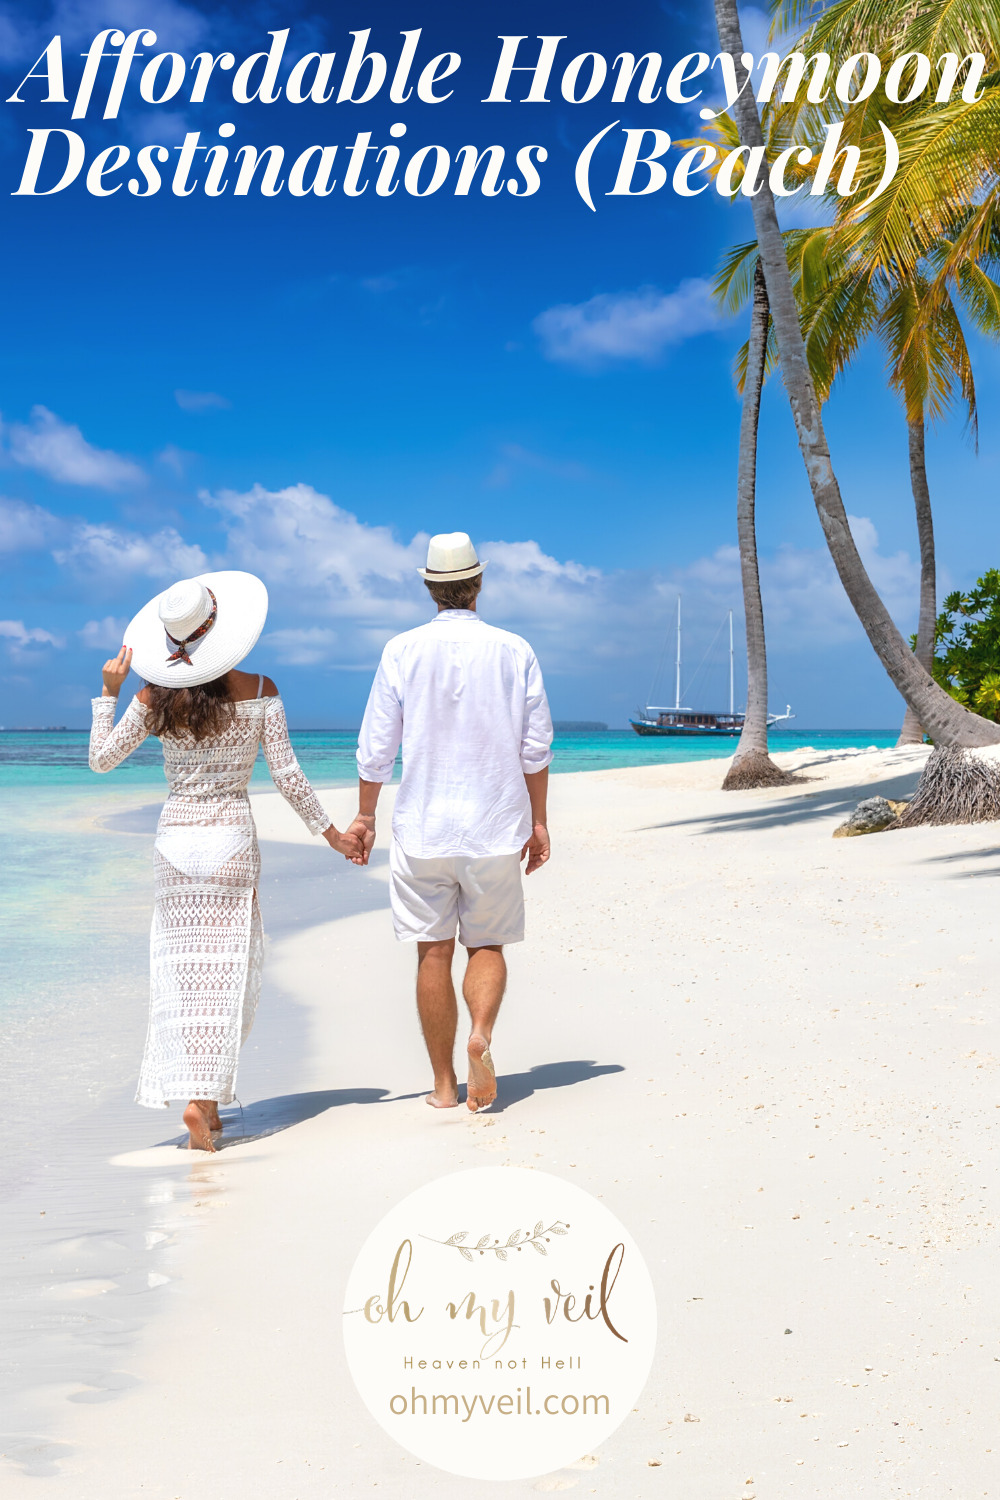 A beach honeymoon is perfect for those who love sun and showing off their honey. We have some amazing beach locations that are affordable honeymoon destinations. You won't want to miss these amazing places. Keep reading! #honeymoondestinations #beachhoneymoondestinations #Greecehoneymoons